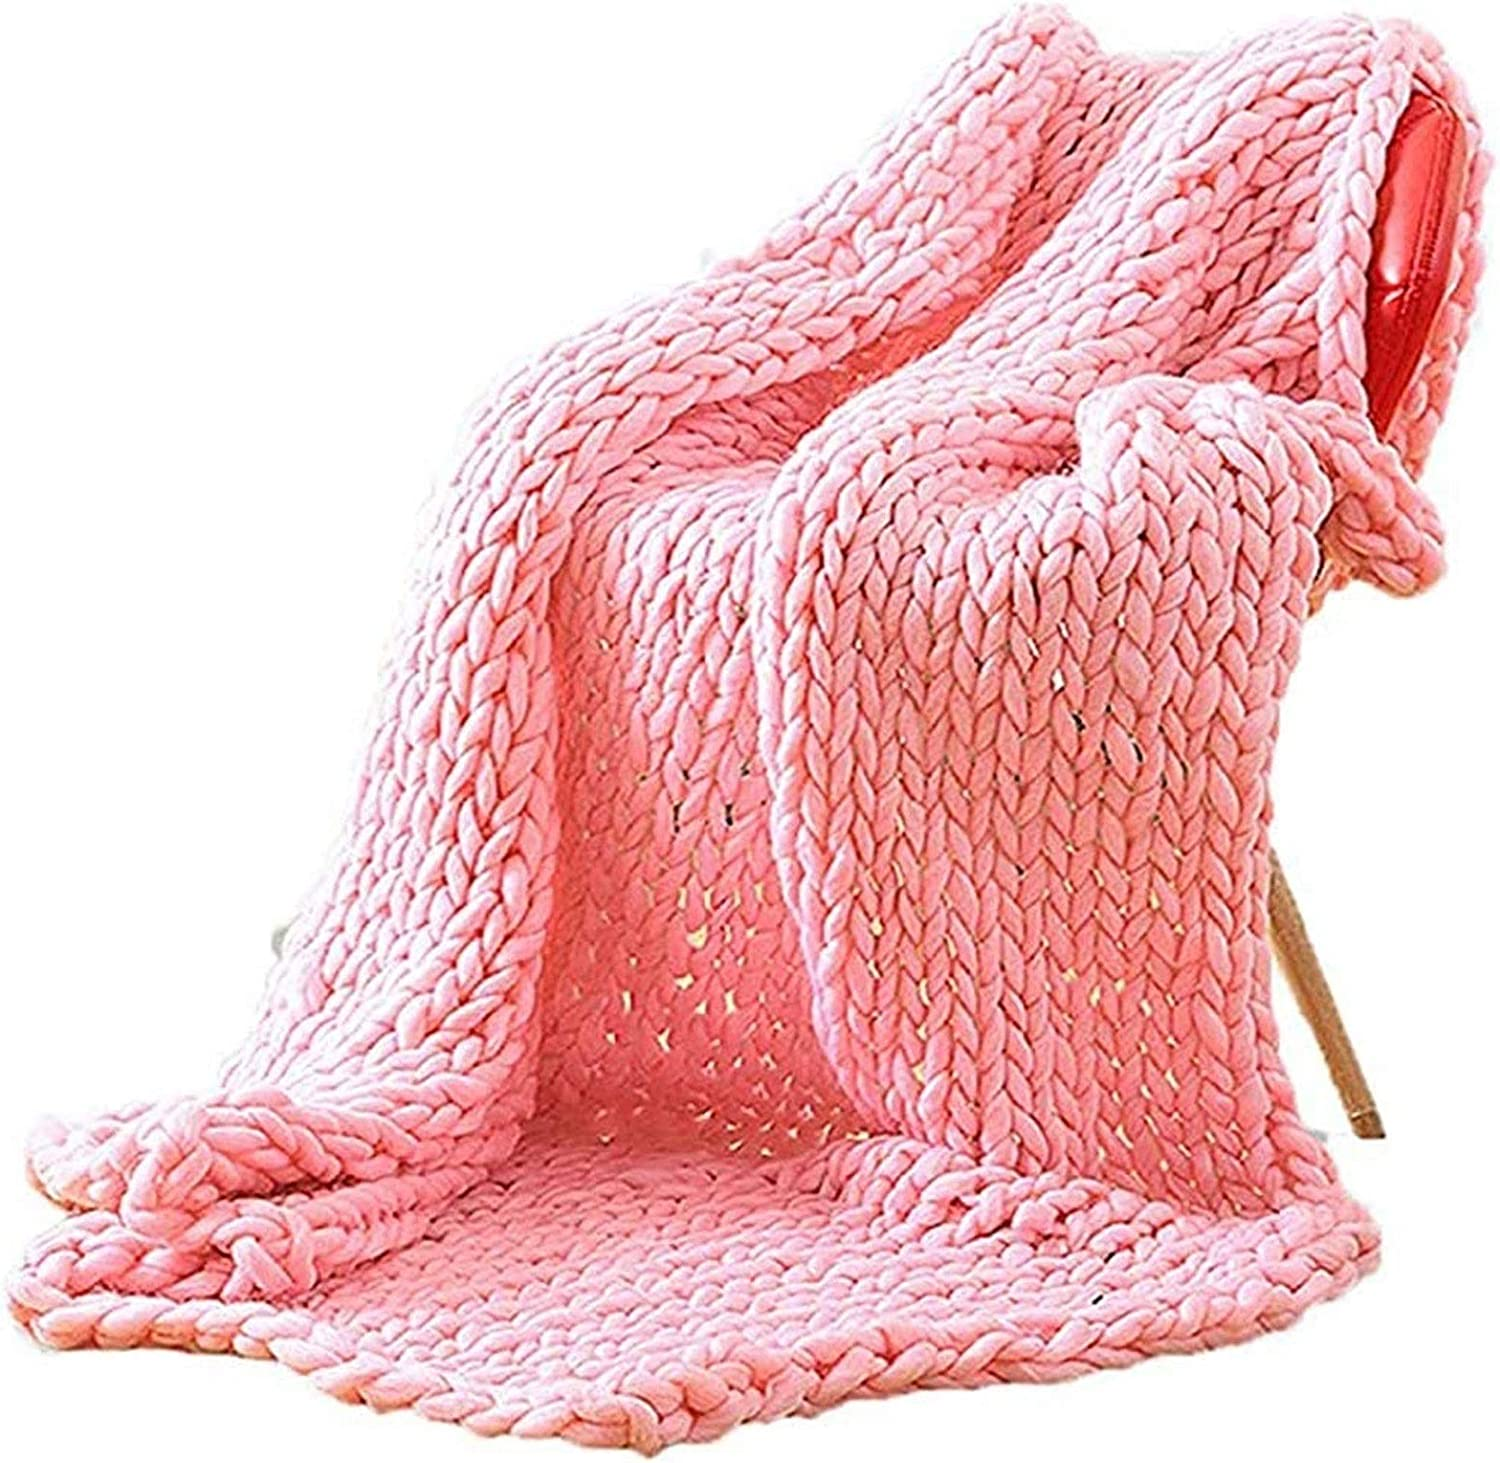 YXYH Handmade Chunky Knit Super special price Blanket Thr Large Knitting Bulky Very popular Thick